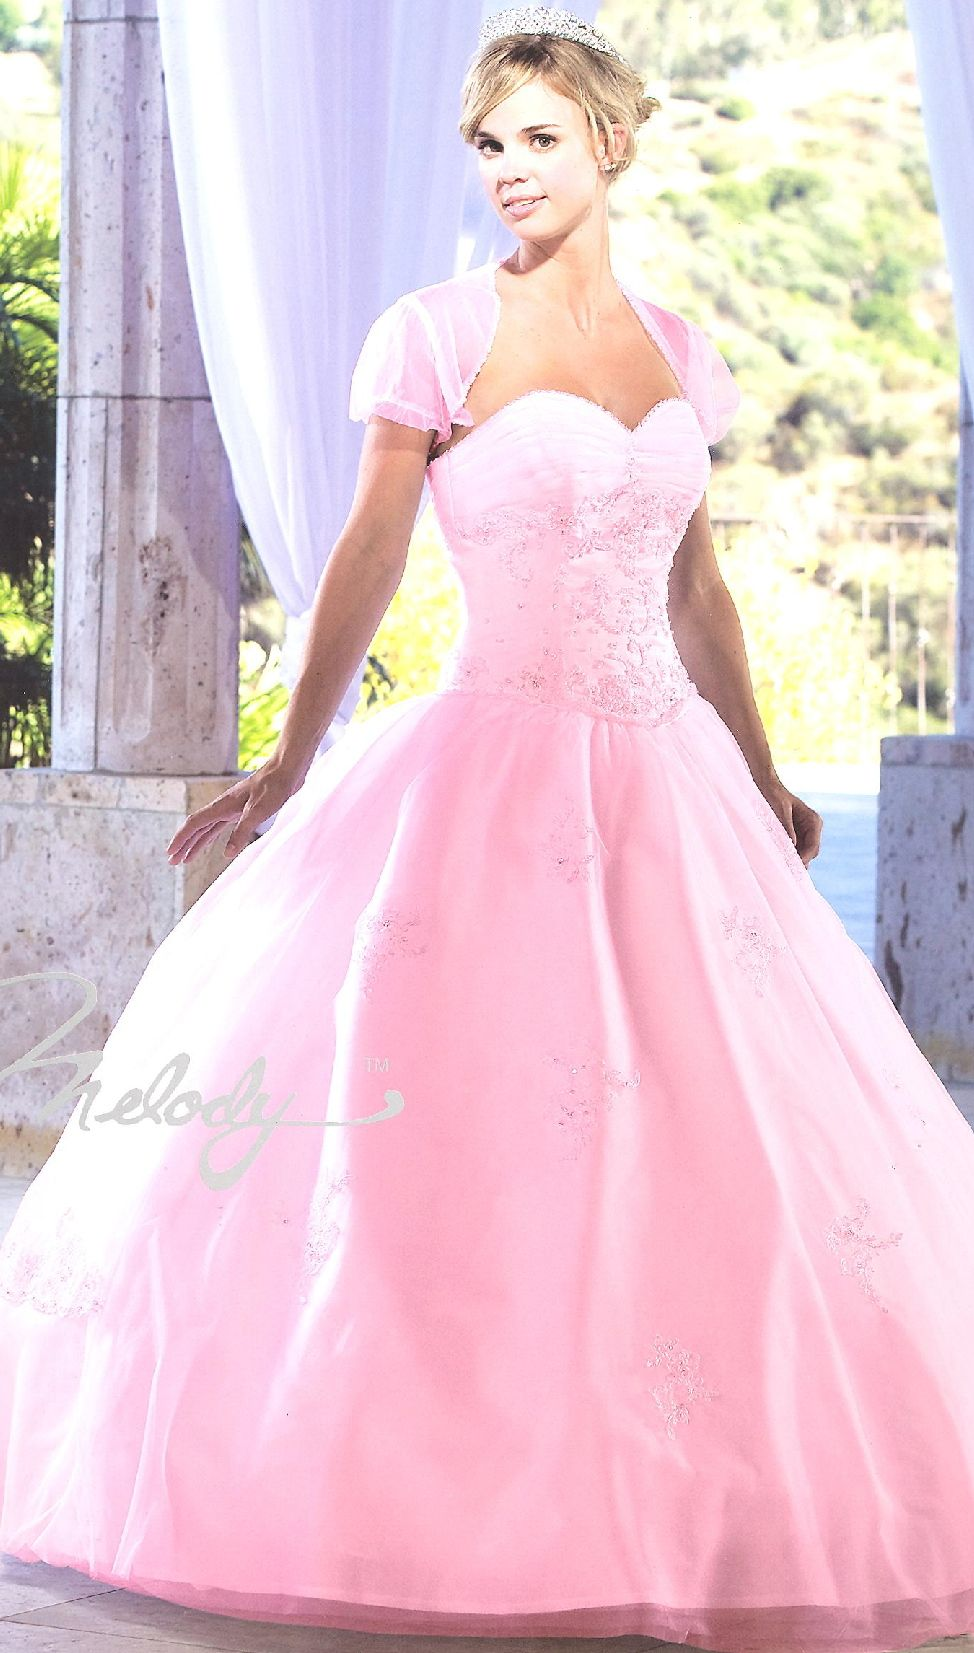 Wedding Quinceanera Dresses 143 Think Traditional ! | MELODY Wedding ...